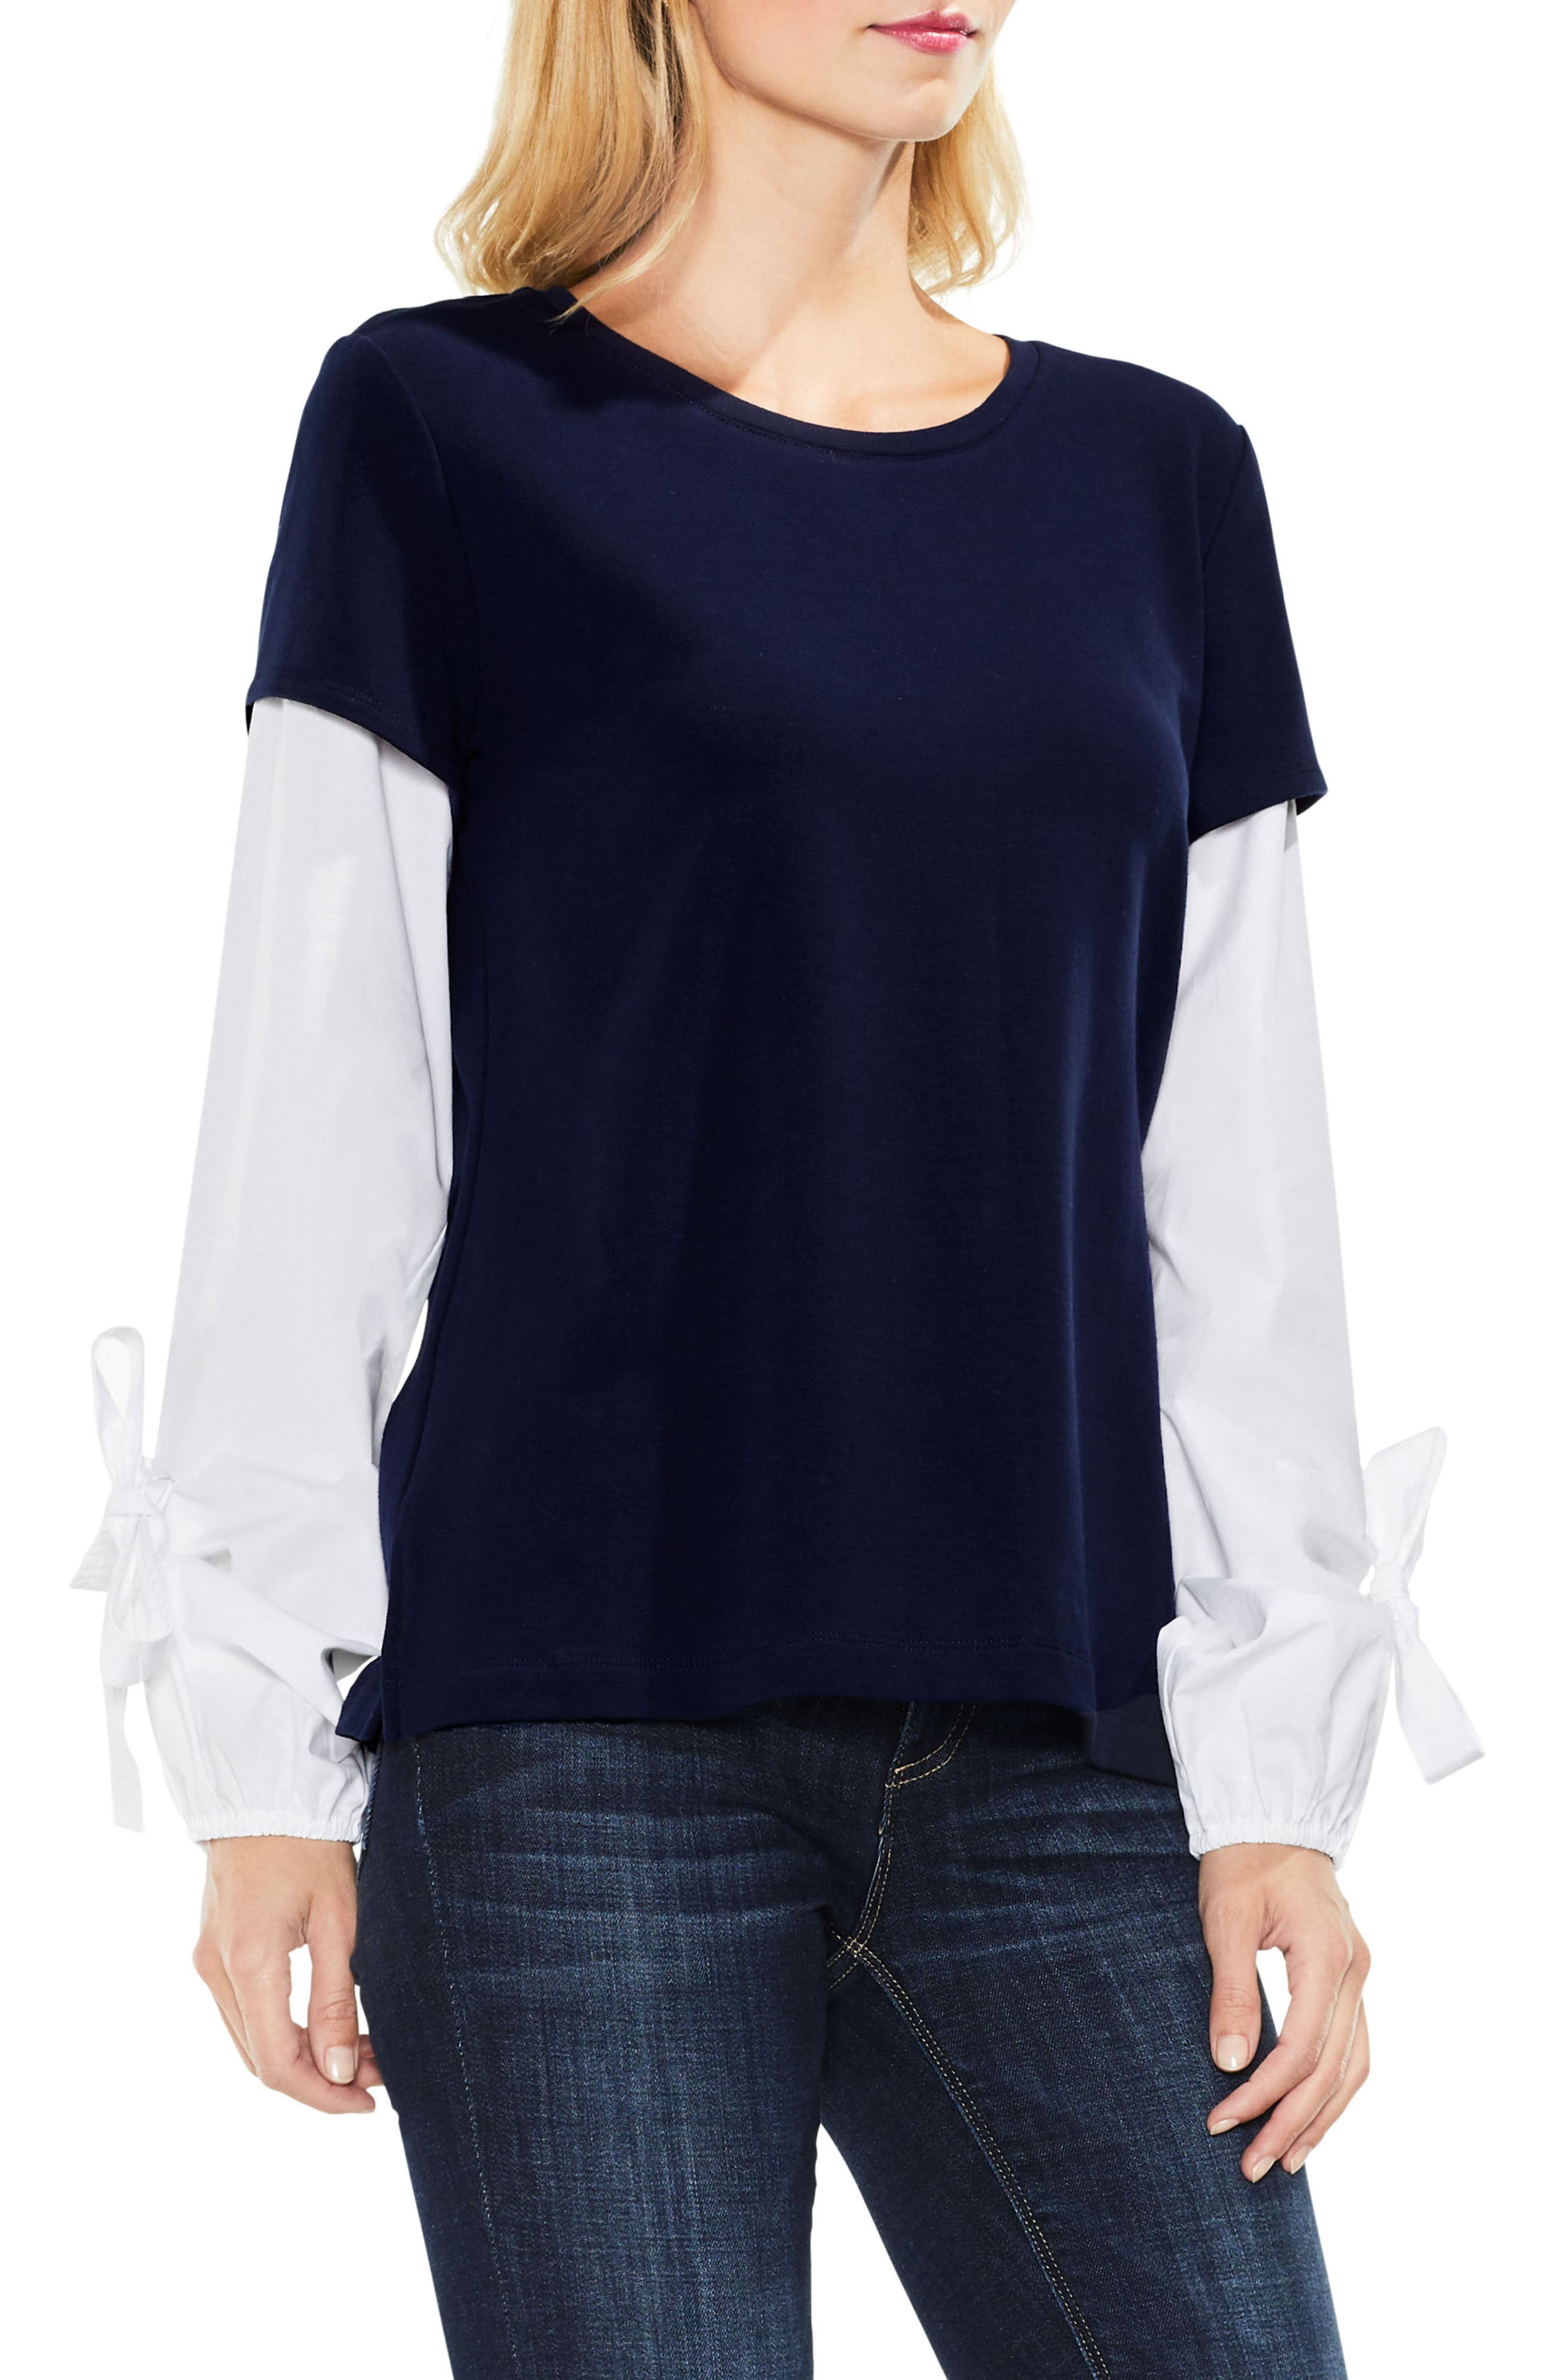 Main Image - Two by Vince Camuto Bubble Sleeve Mix Media Top (Regular & Petite)